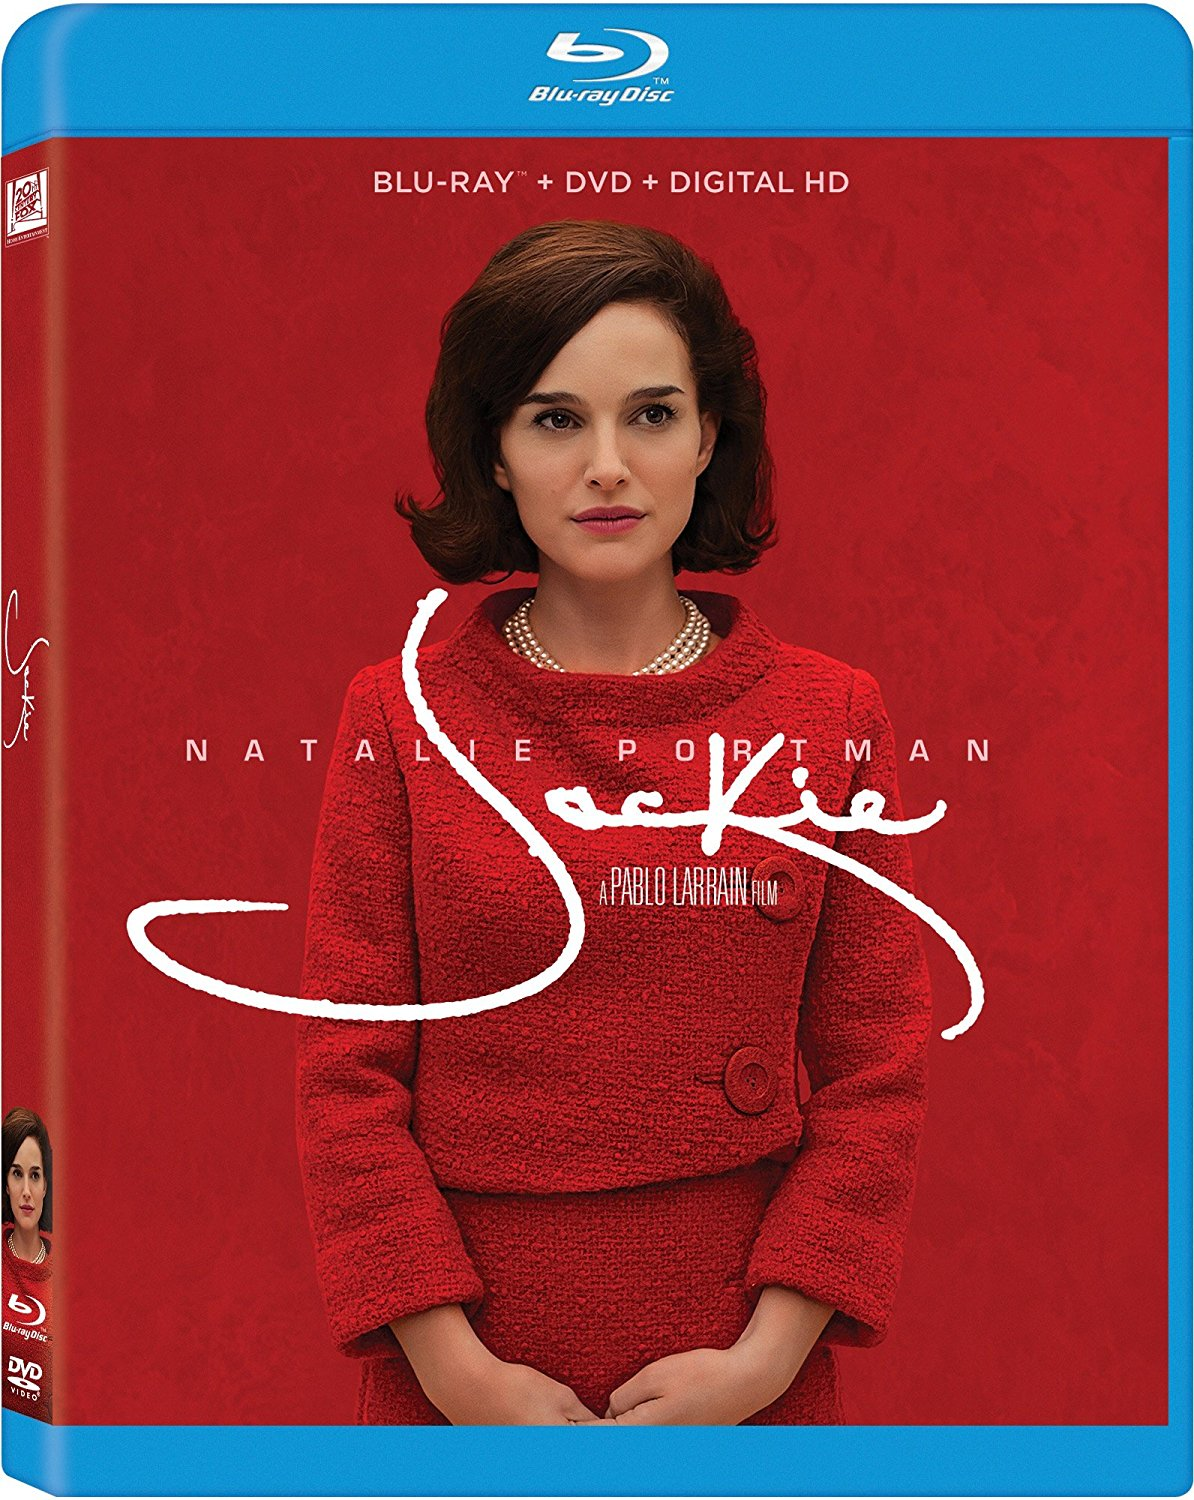 Natalie Portman as Jackie on Blu-ray